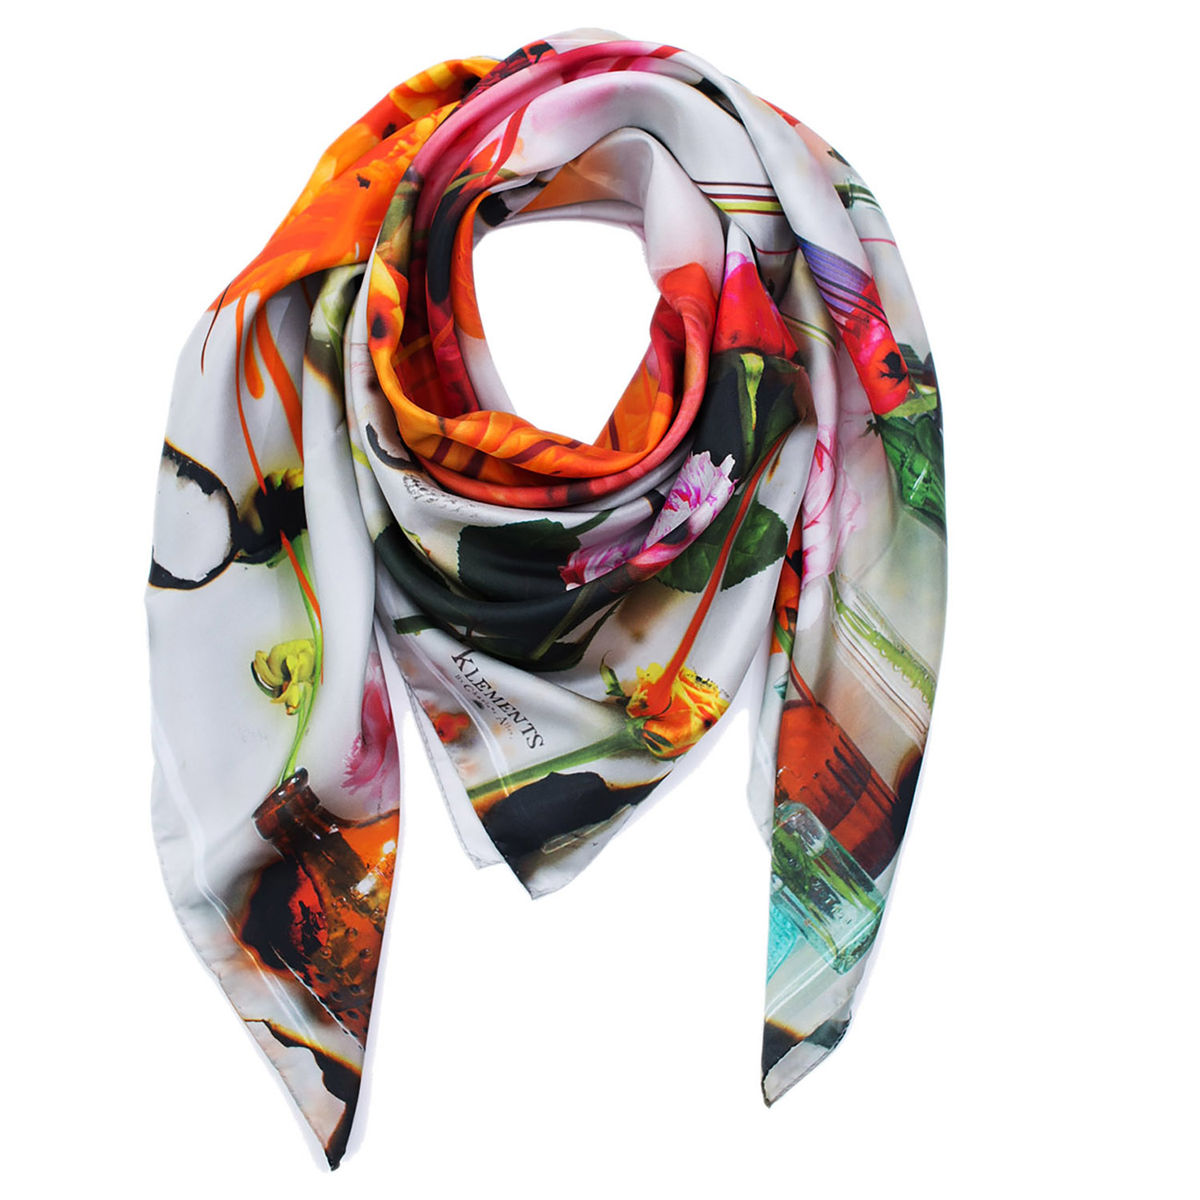 BLEEDING MAY LARGE SQUARE SCARF - product images  of